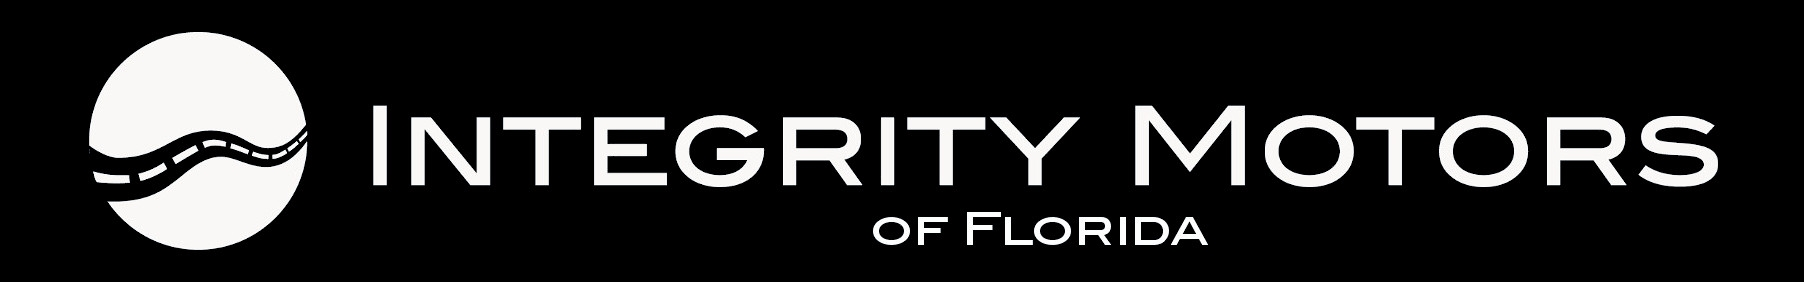 integrity motors of florida home